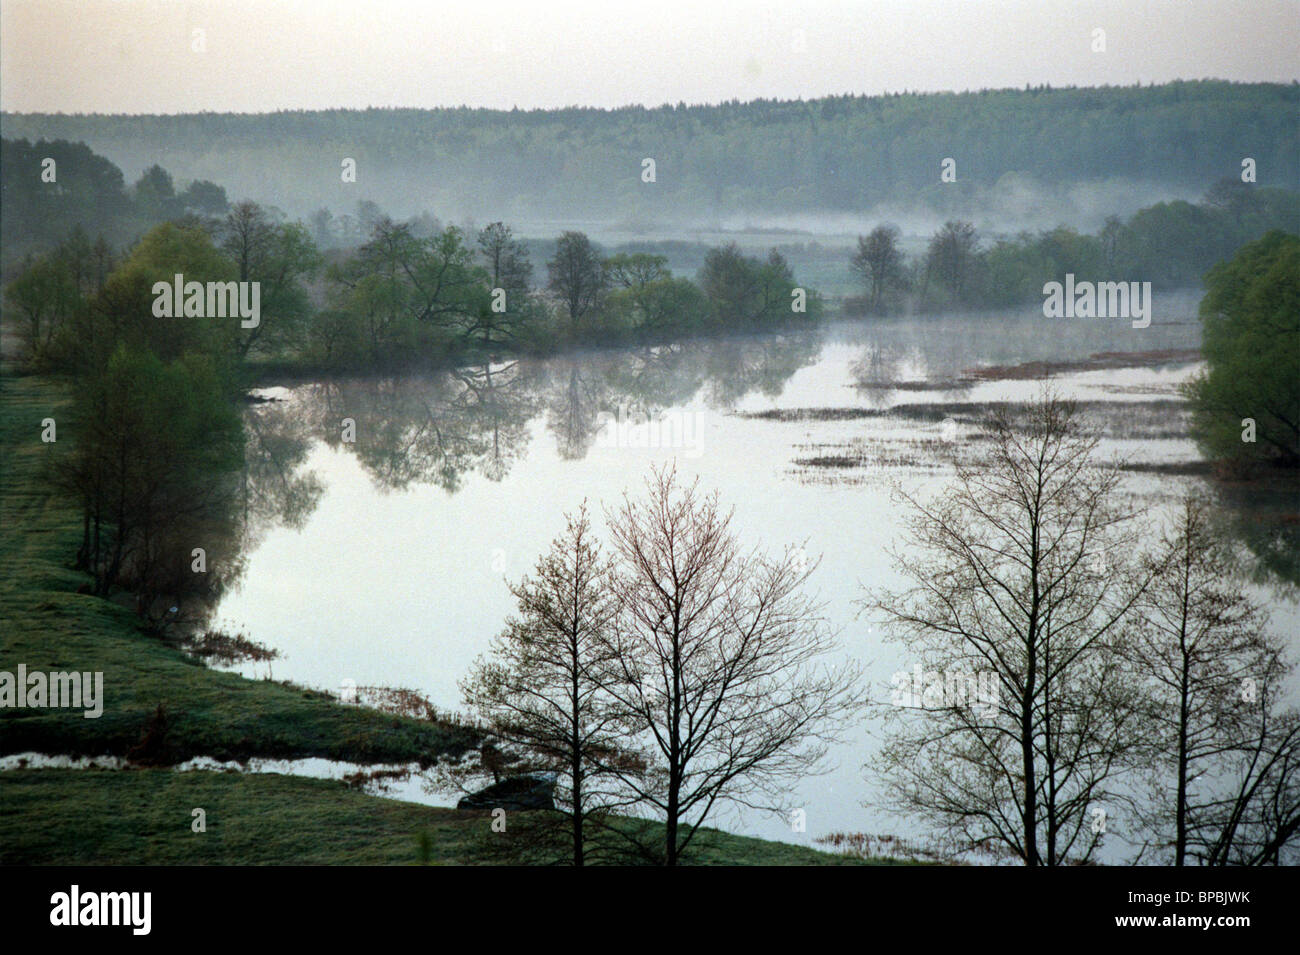 The picture shows the river Sukhodrev flowing near the park of the Goncharov family country estate Polotnyany Zavod - Stock Image